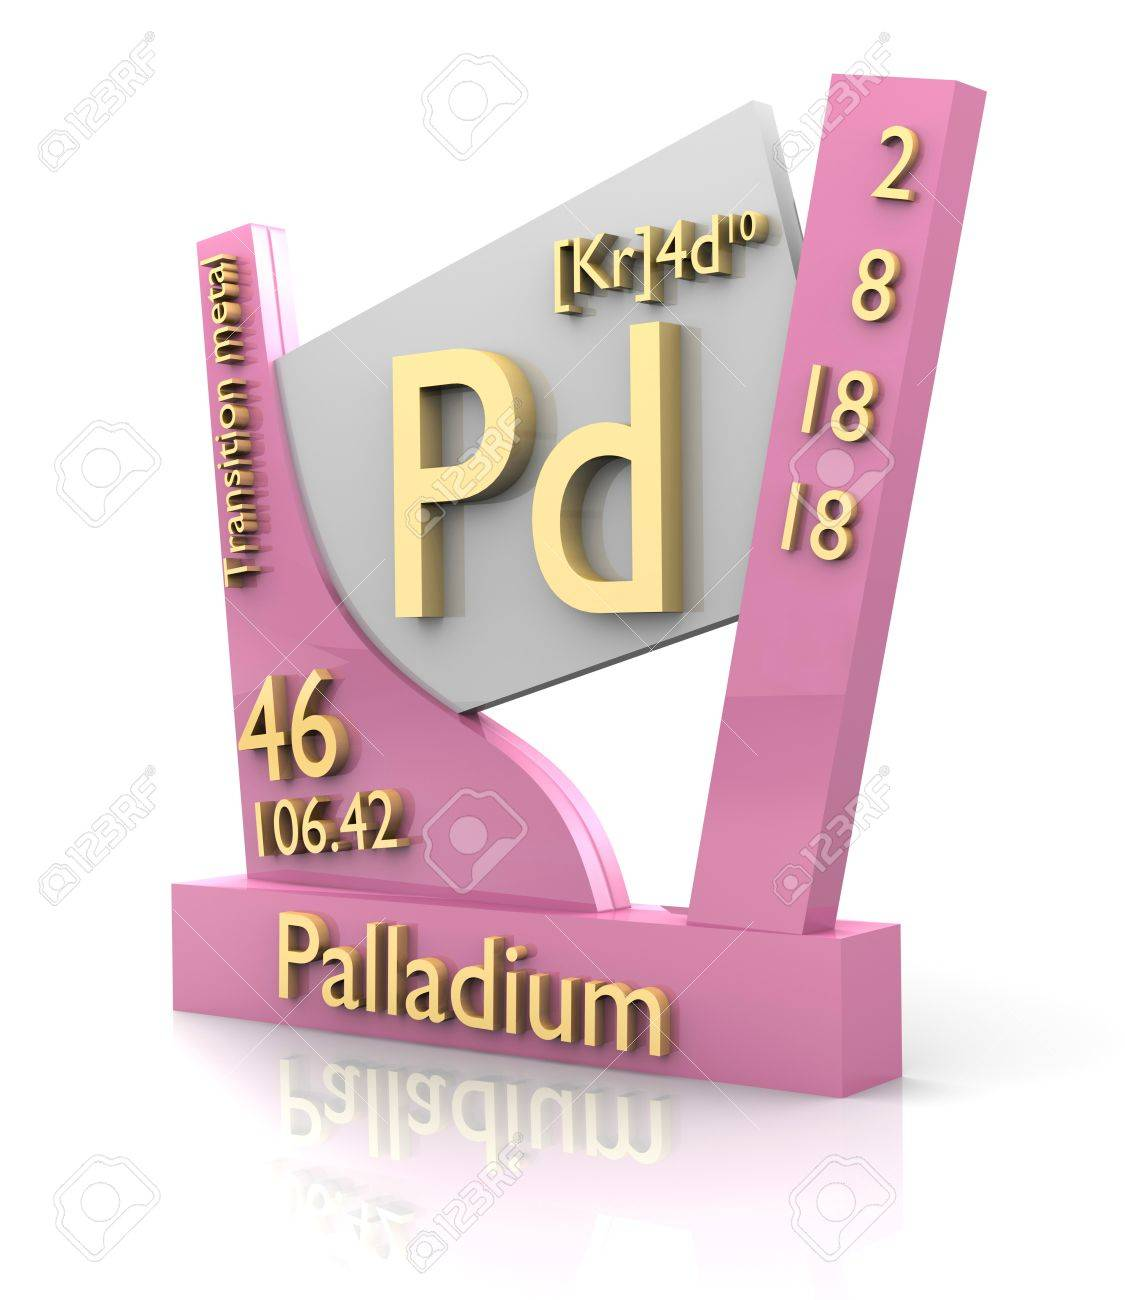 Palladium Form Periodic Table Of Elements 3d Made Stock Photo